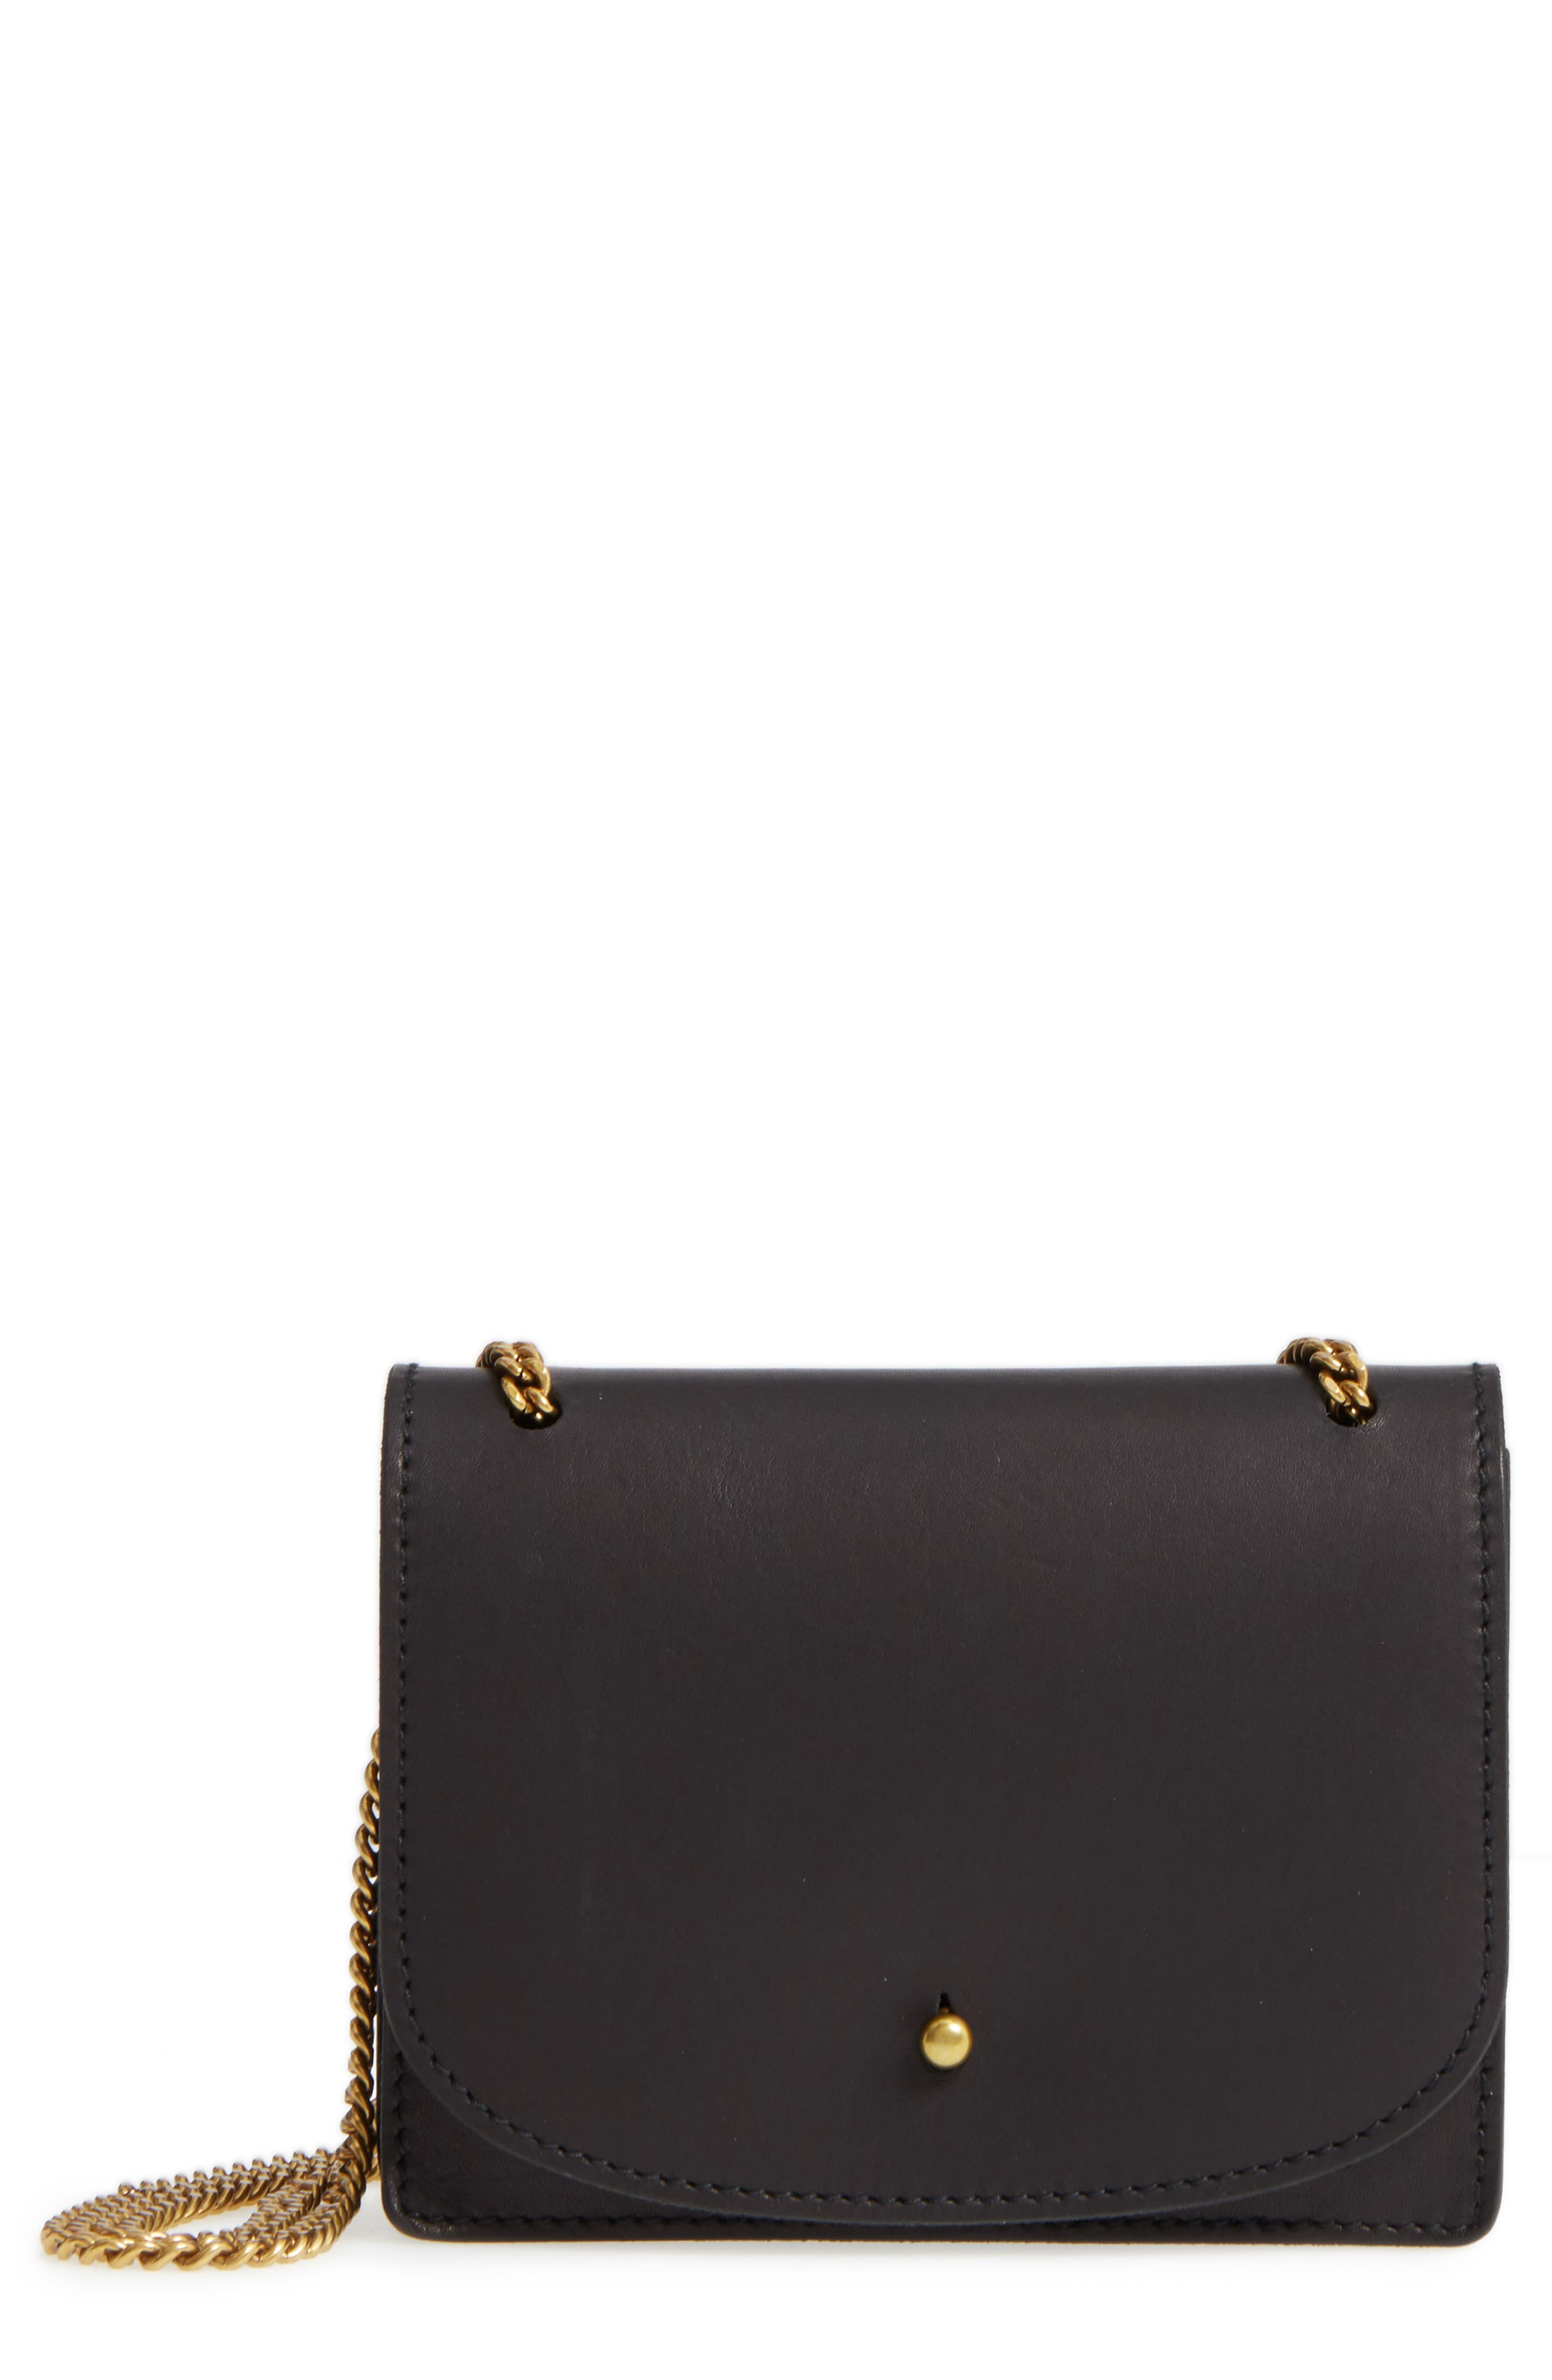 Alternate Image 1 Selected - Madewell Chain Leather Crossbody Bag